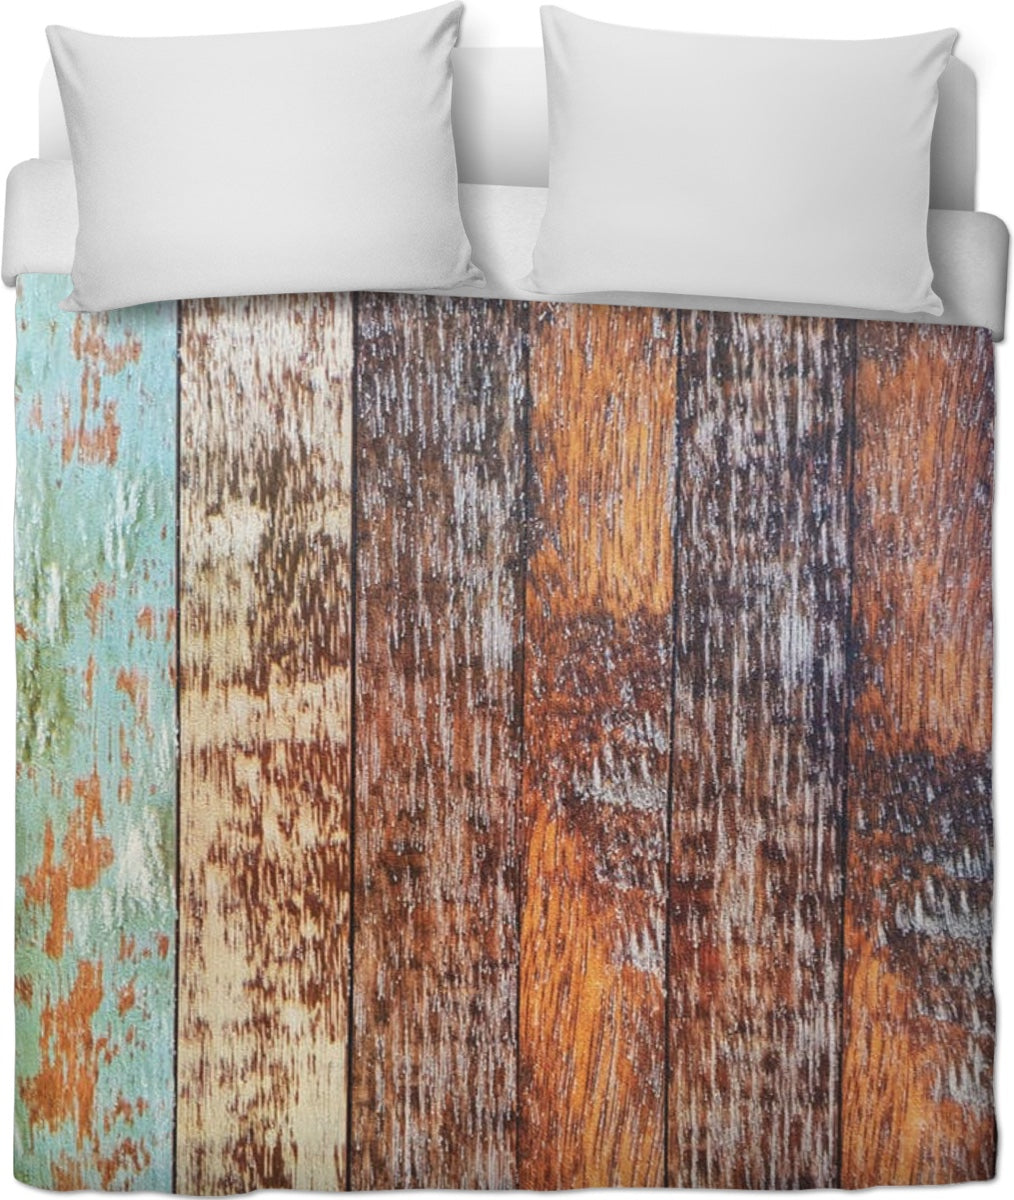 Wood Duvet Cover